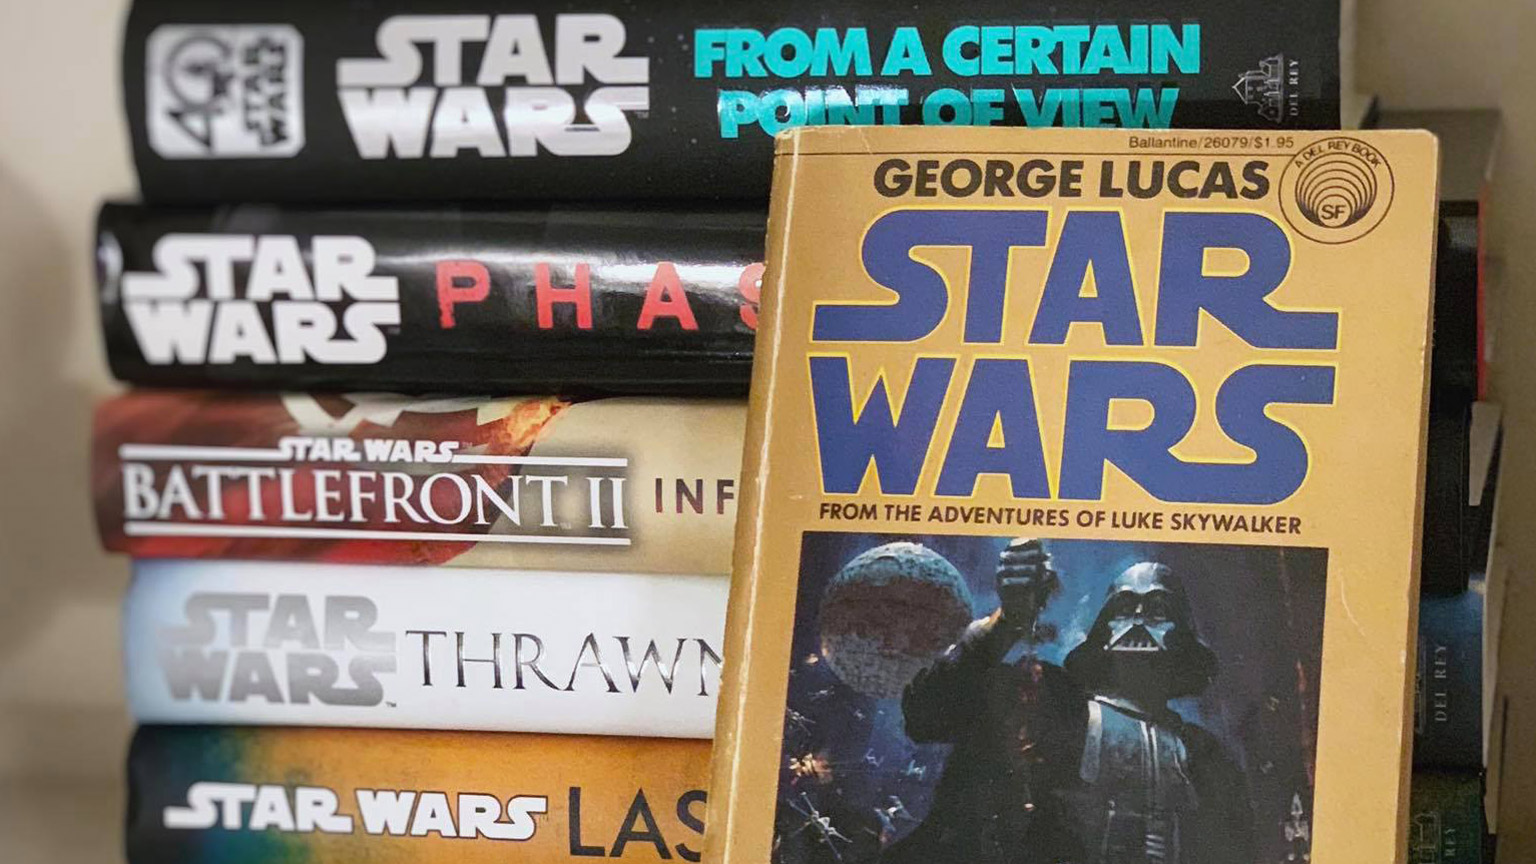 A pile of assorted Star Wars books